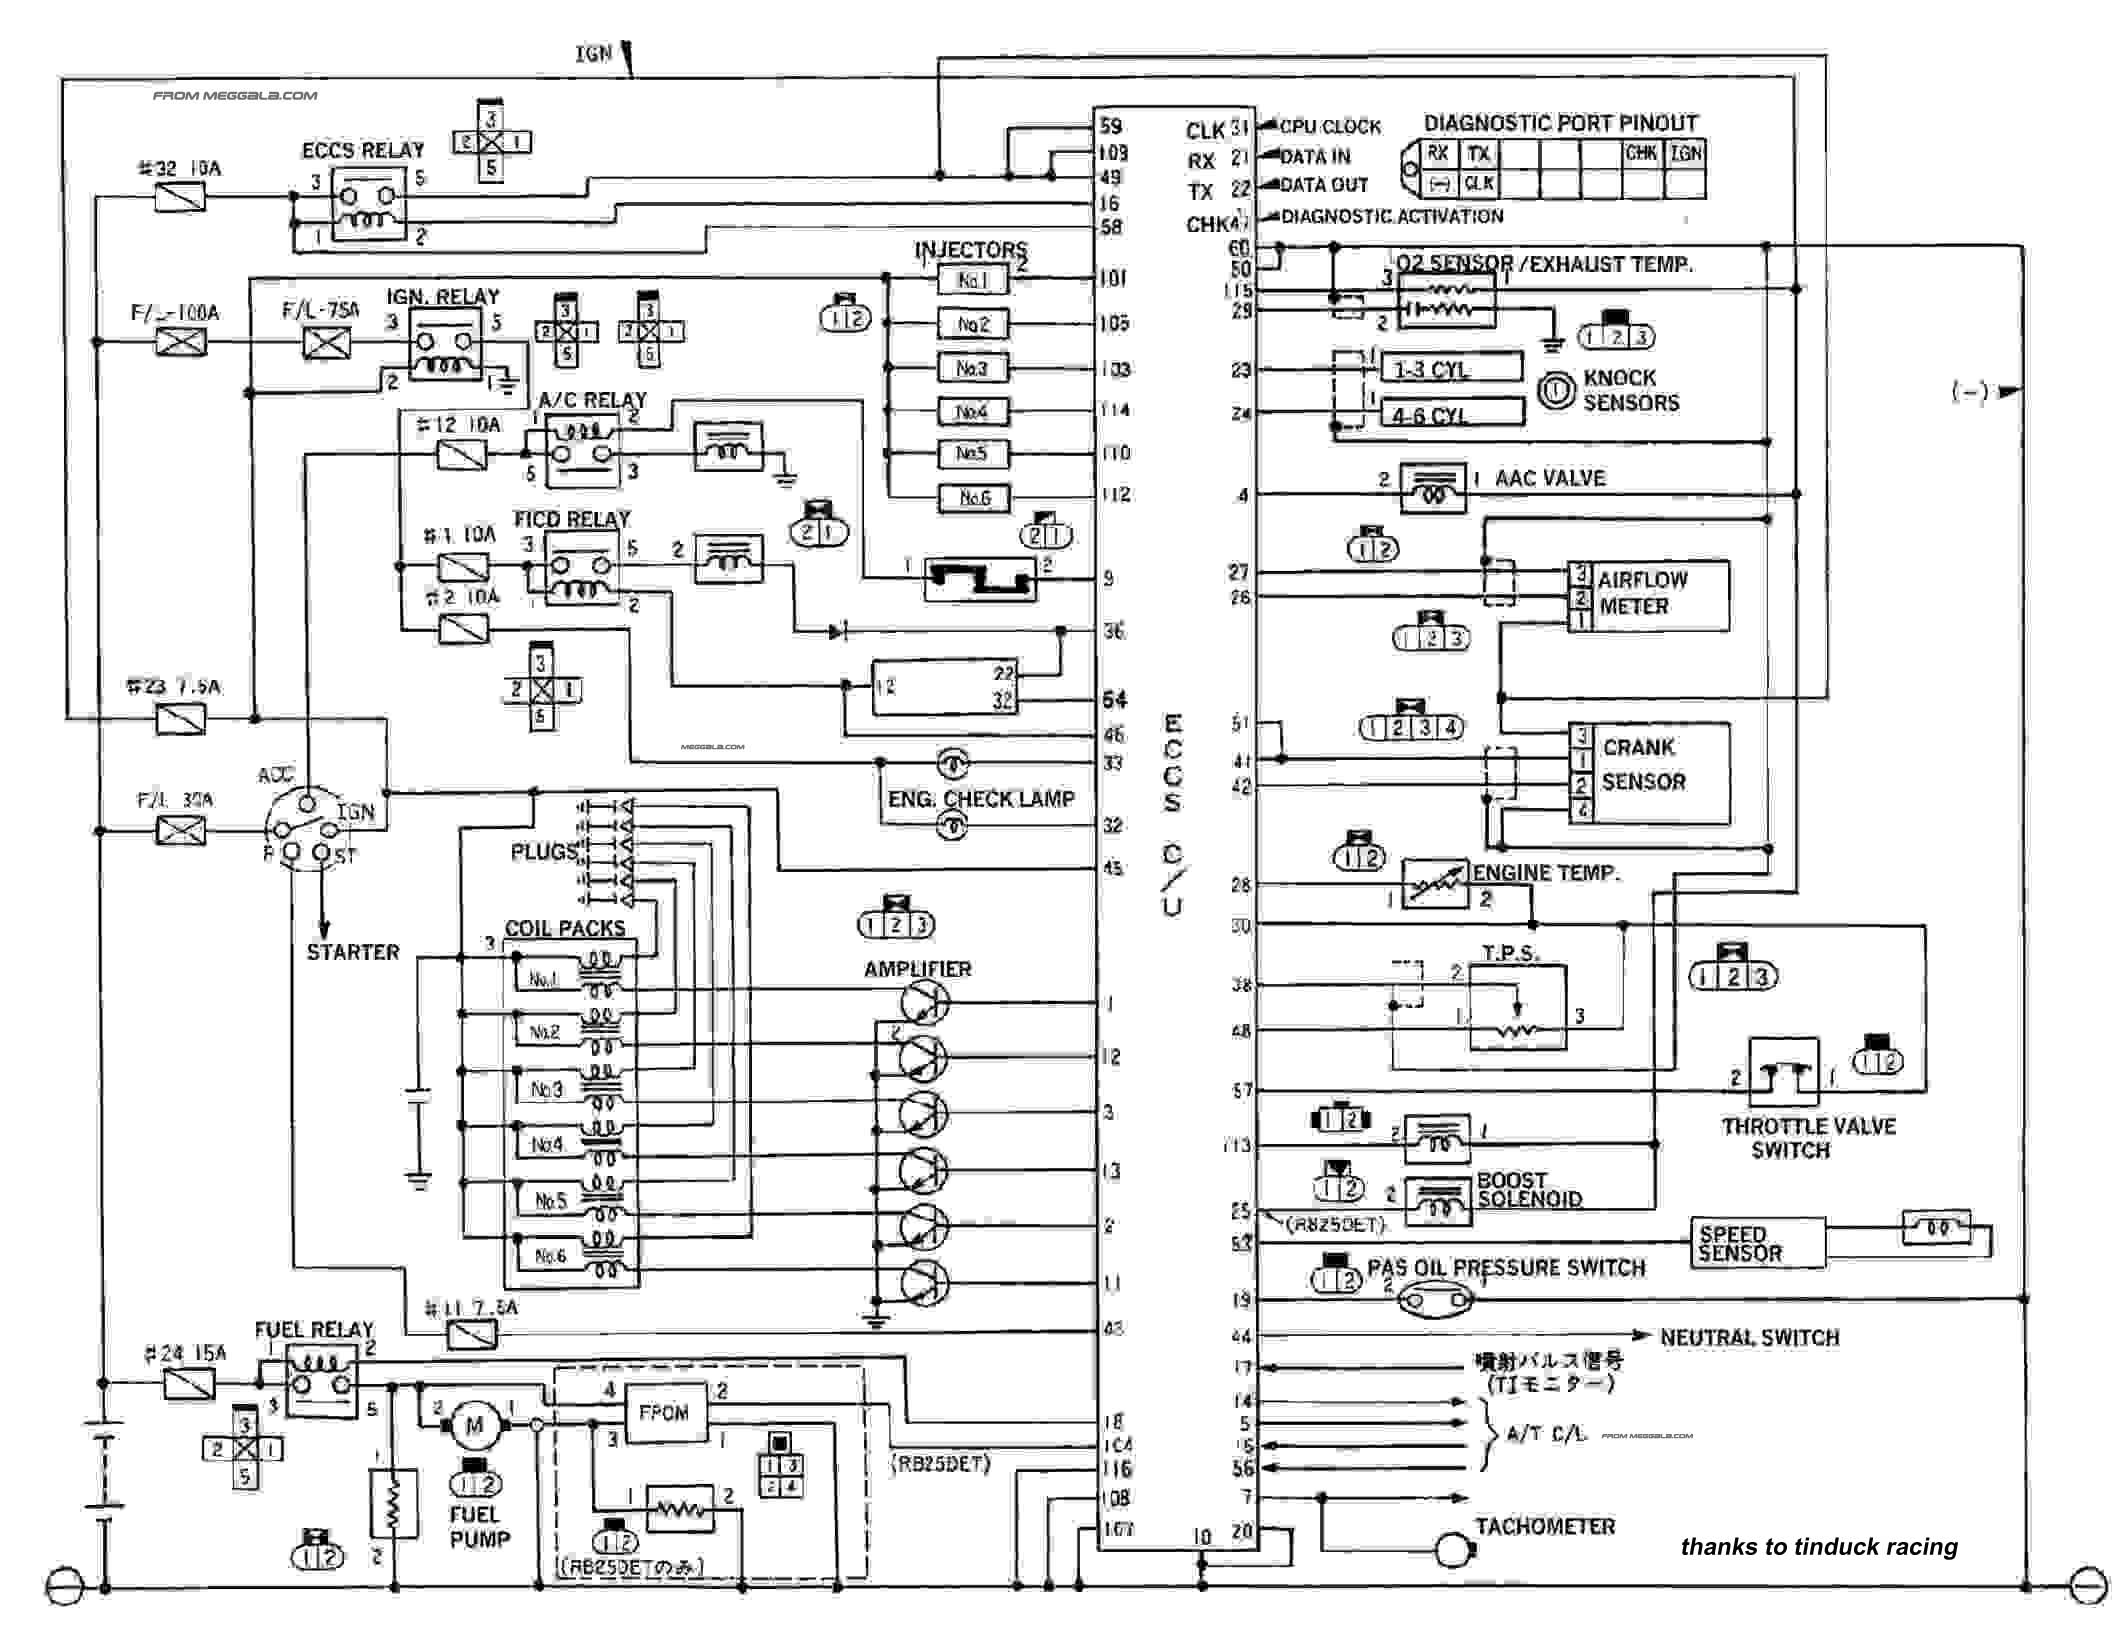 S14 Alternator Wiring Diagram : My car care tips and info page trinituner